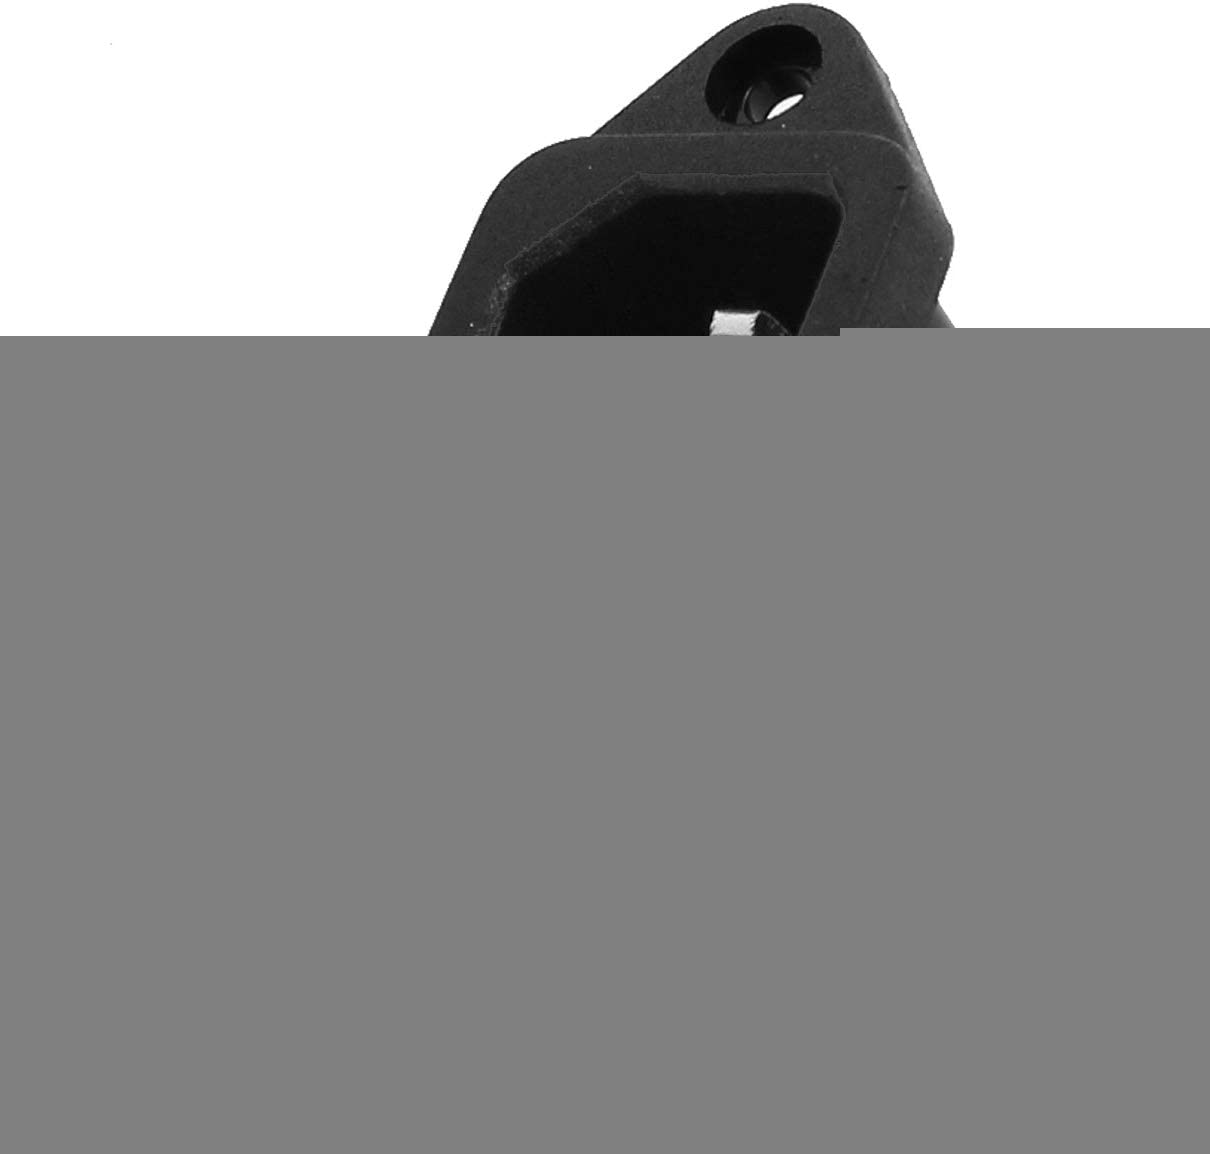 Aexit Panel Mounted Audio Video Accessories Inlet Max 84% OFF C14 IEC320 Albuquerque Mall 3